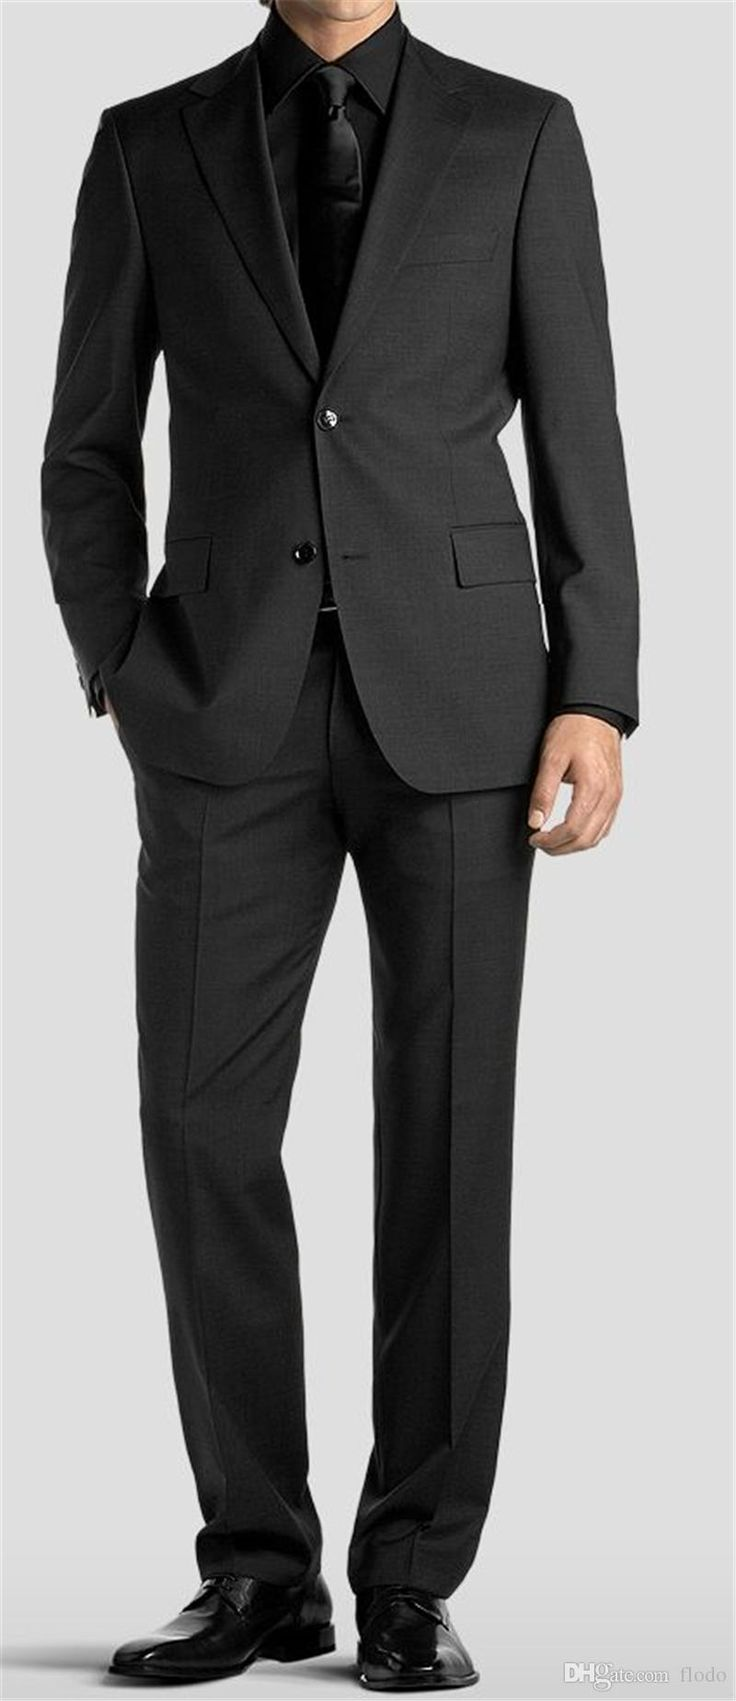 Best 25 men 39 s tuxedo styles ideas on pinterest mens for Black tuxedo shirt for men